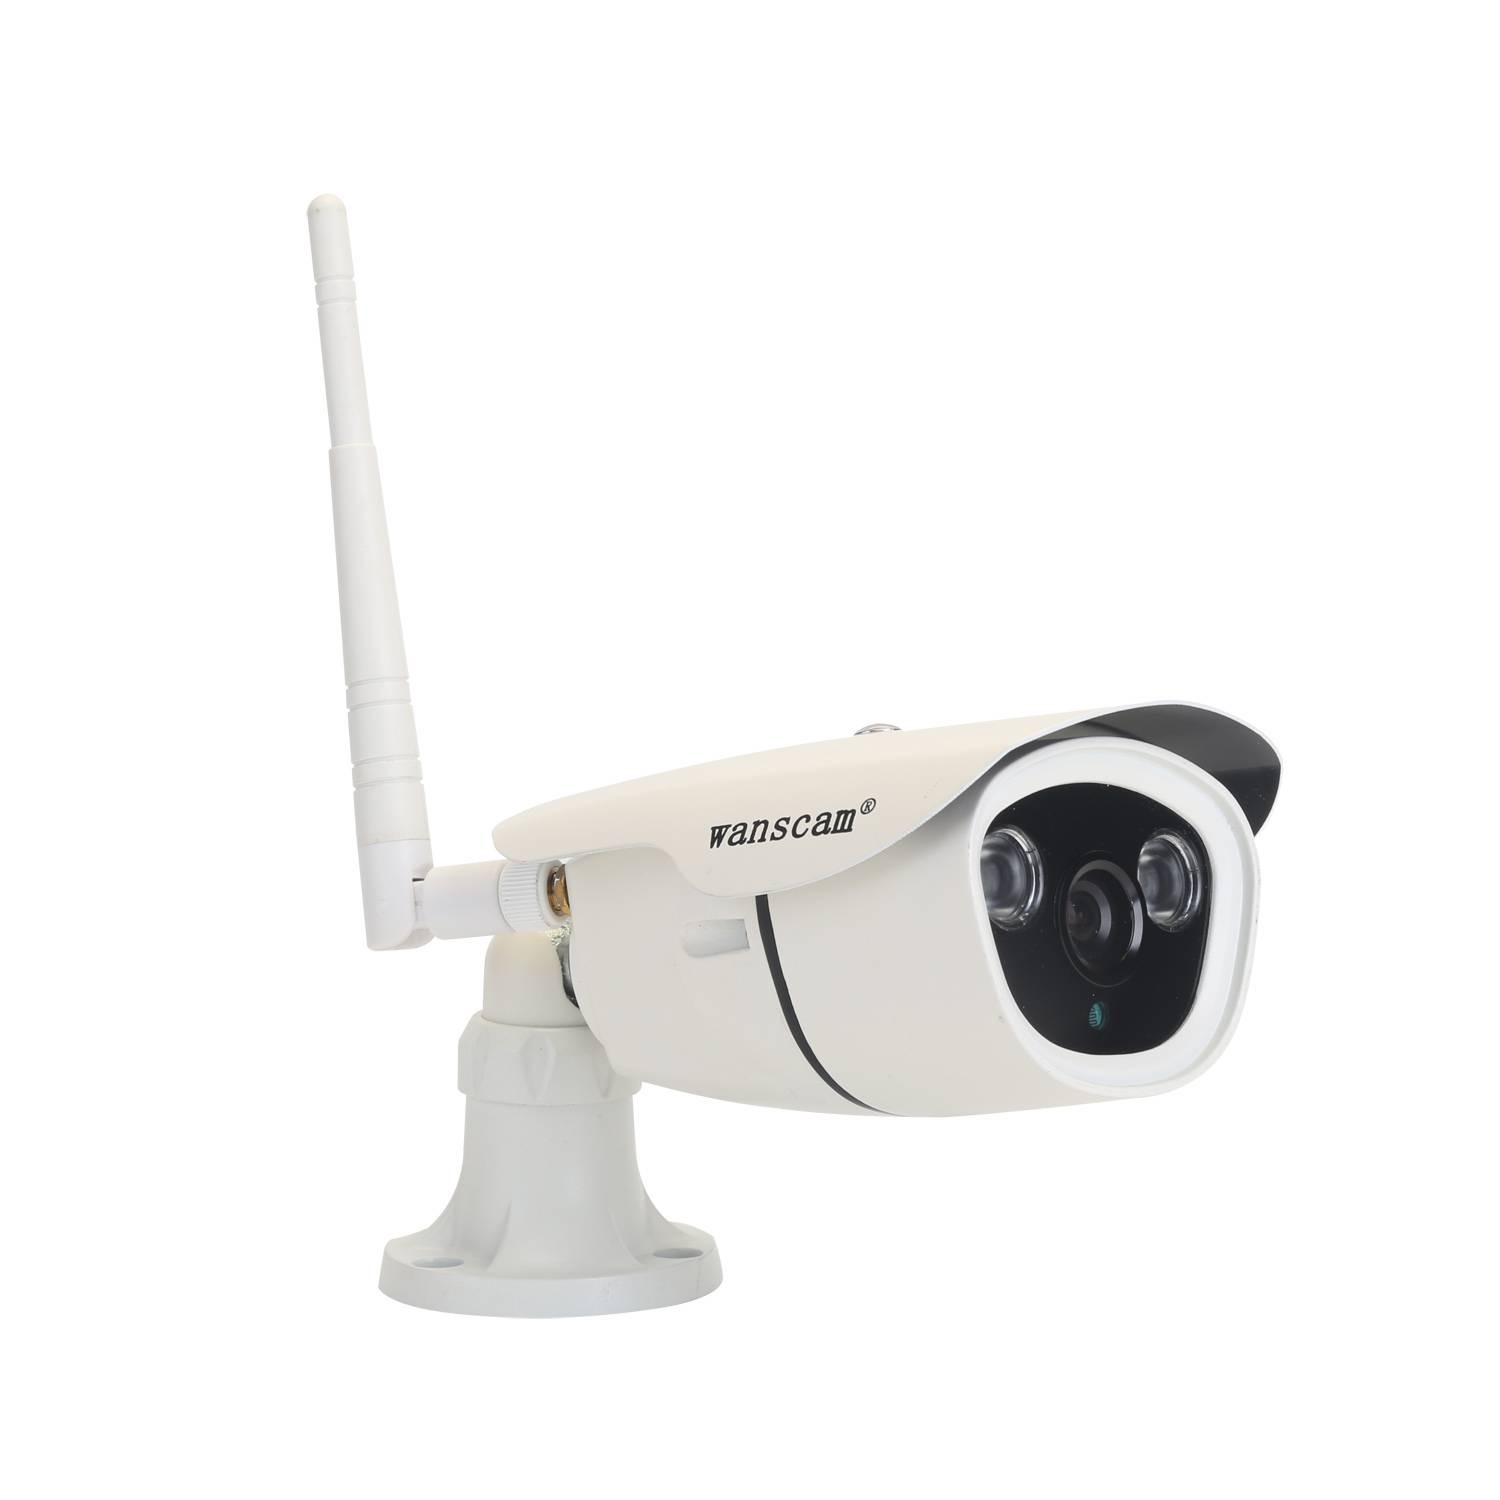 Wanscam HW0042 HD Onvif Wifi Build in 16G TF Card P2P IP Camera